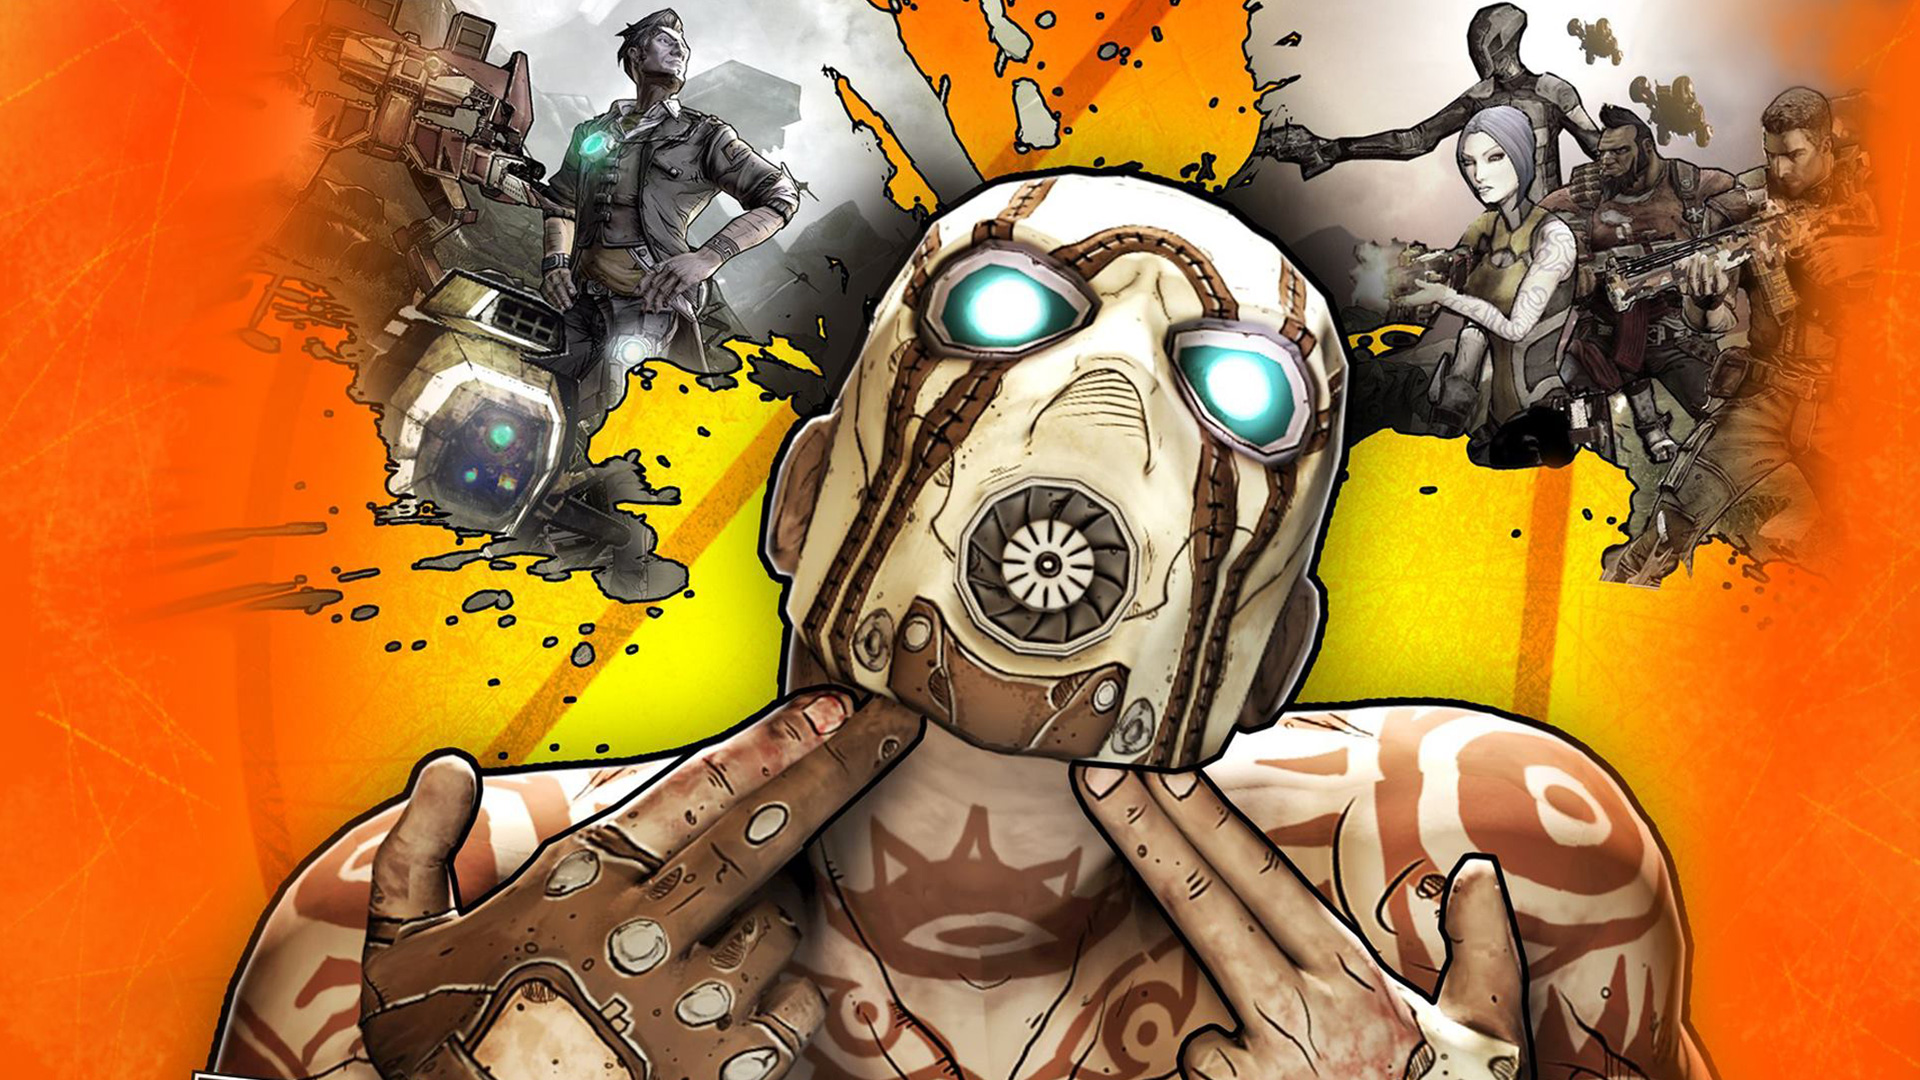 borderlands 2 hd 31918 1920x1080 px ~ hdwallsource